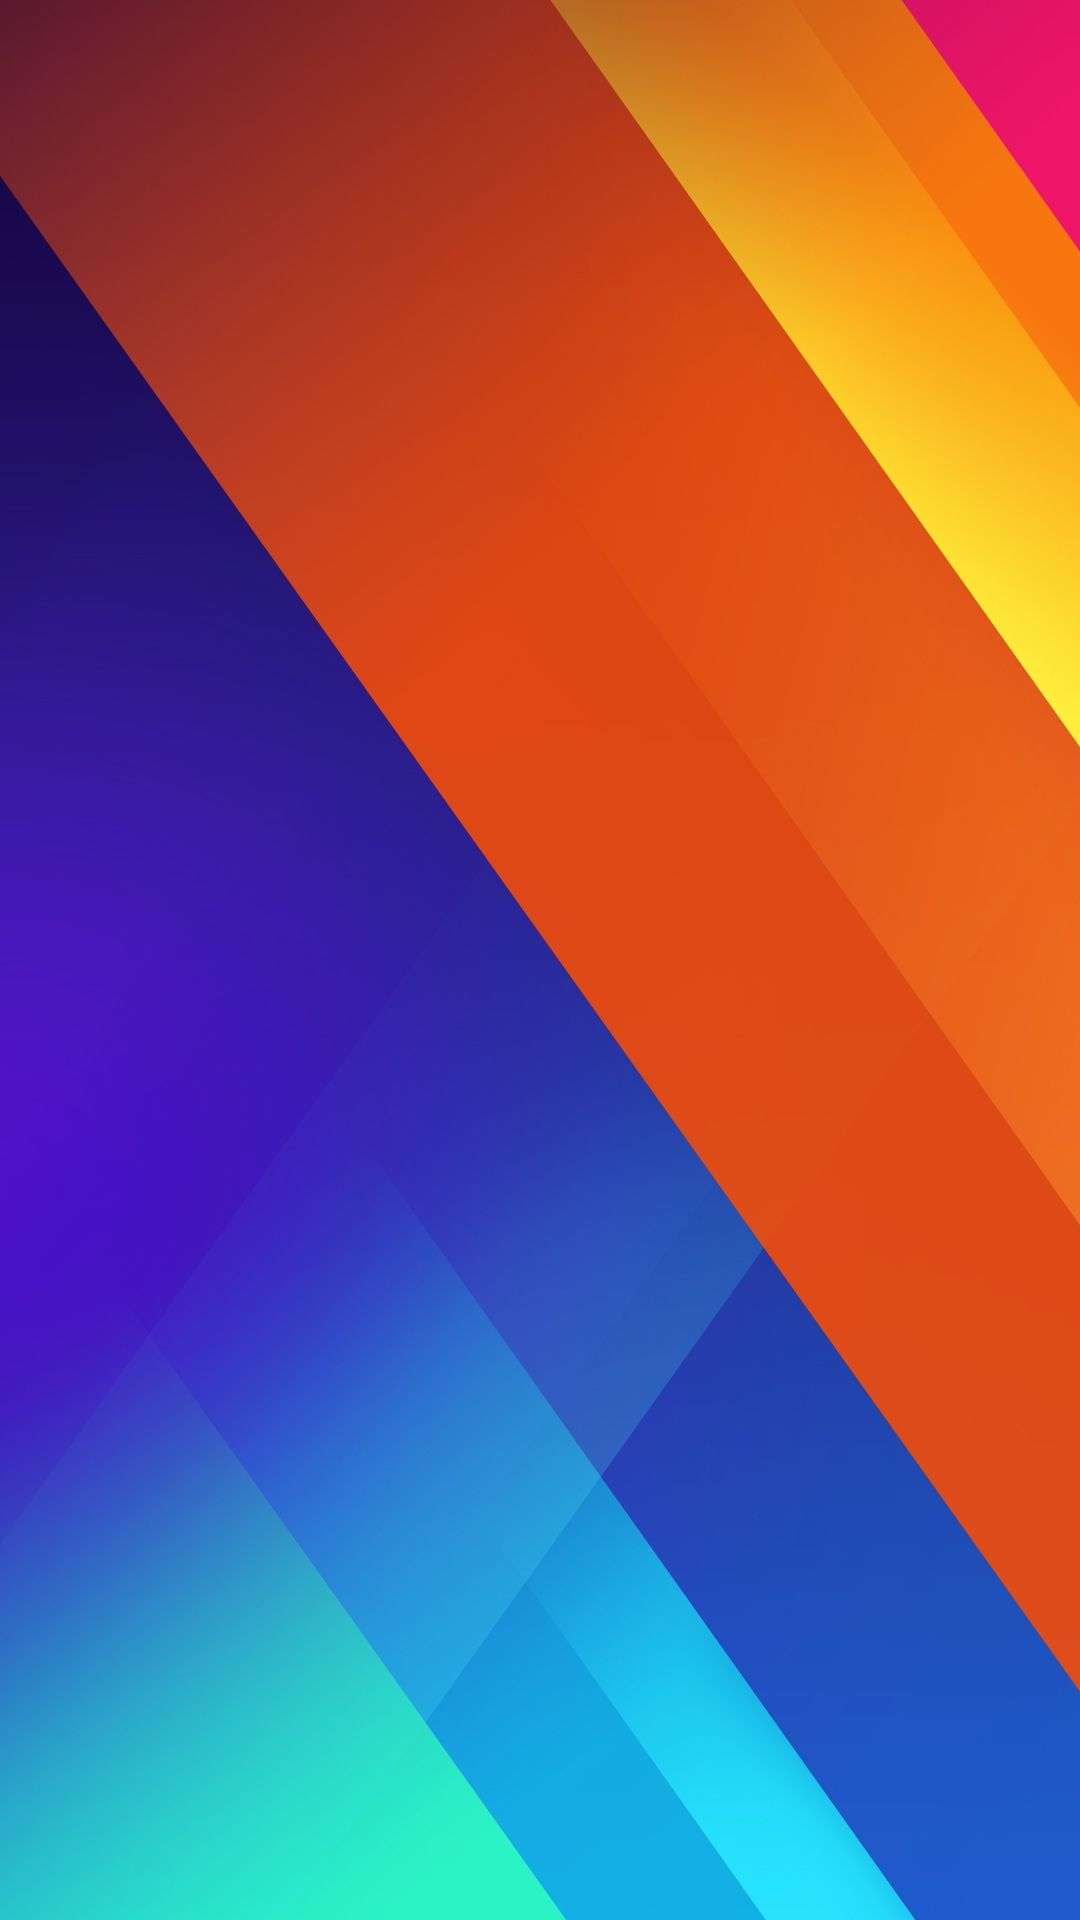 image for meizu mx5 wallpapers hd wallpapers for android mobile | n